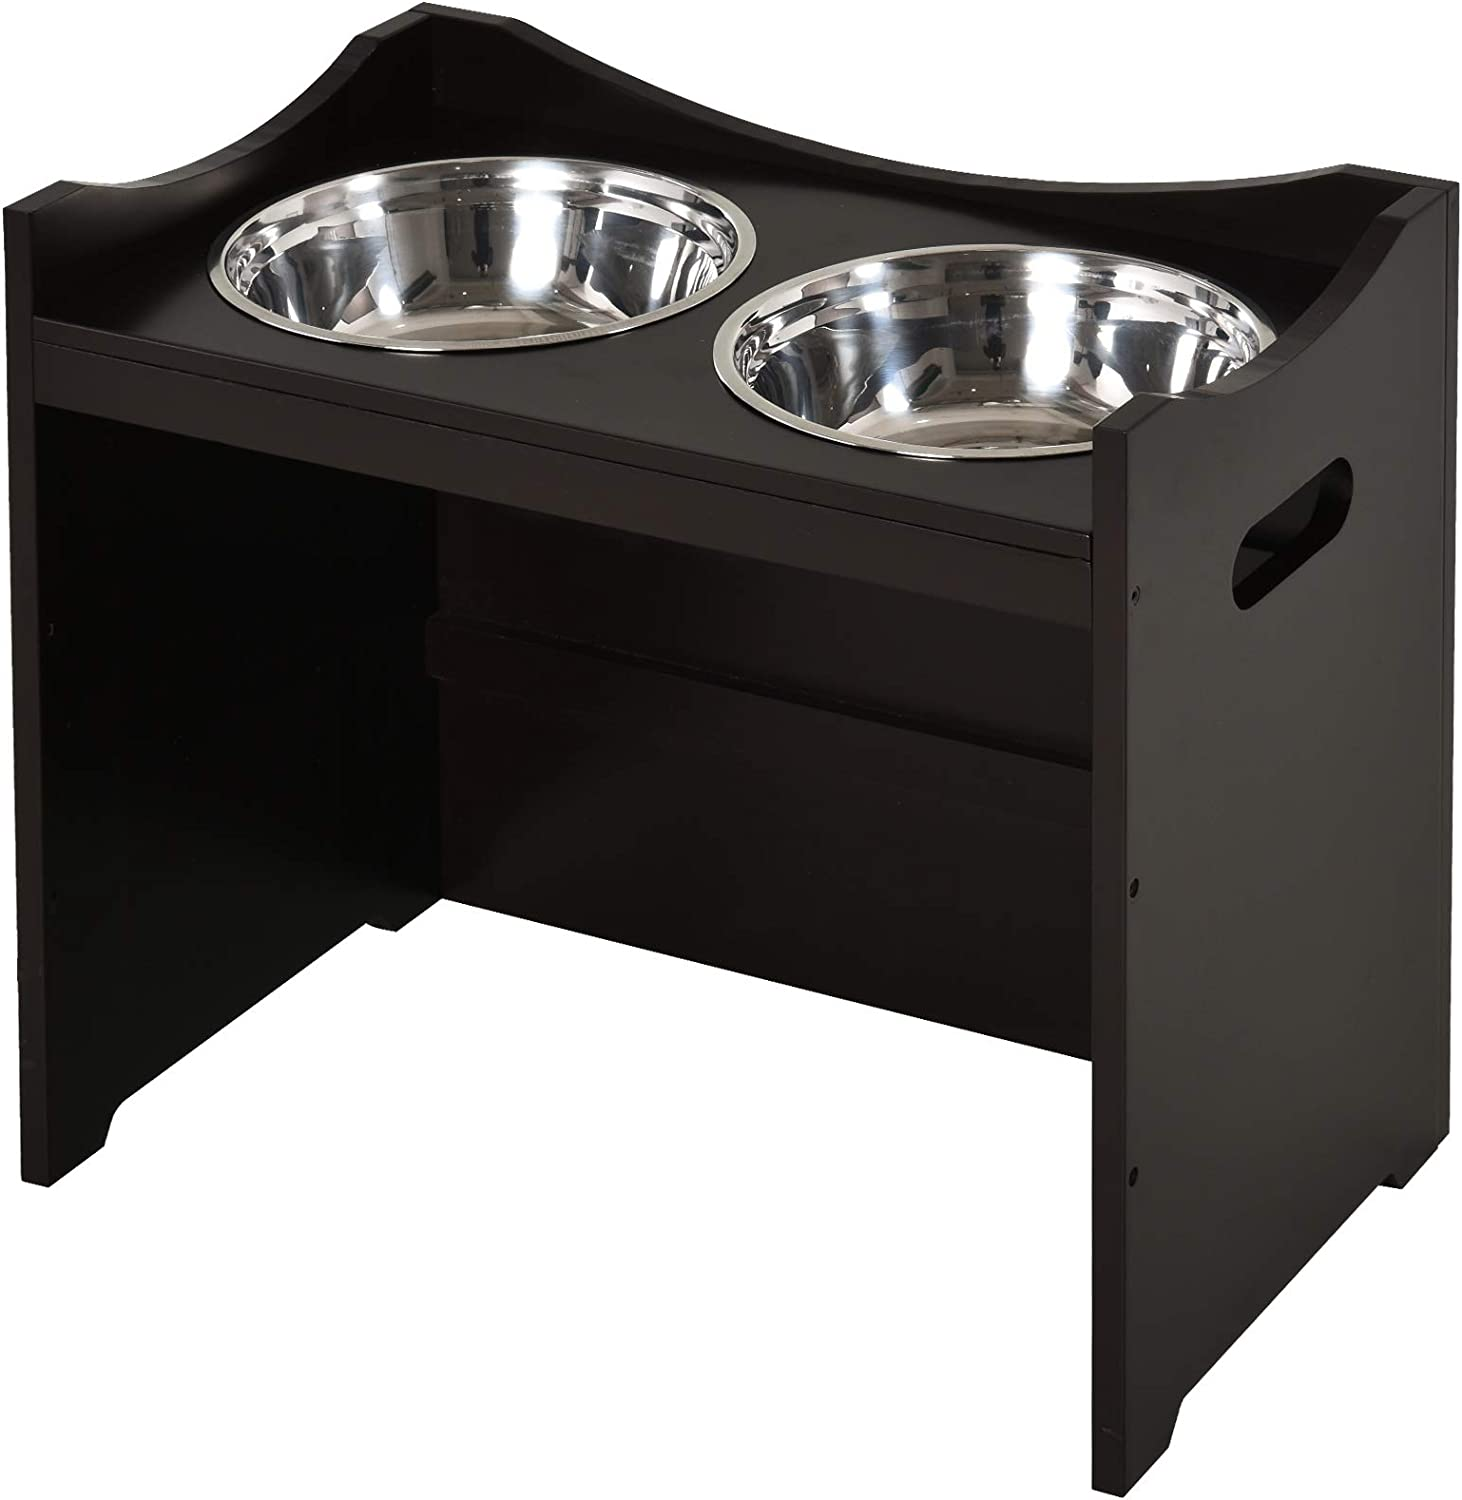 PawHut Raised Pet Food Elevated Feeder with 2 Stainless Steel Bowls, 3 Levels Adjustable Height Levels, and Wood Finish